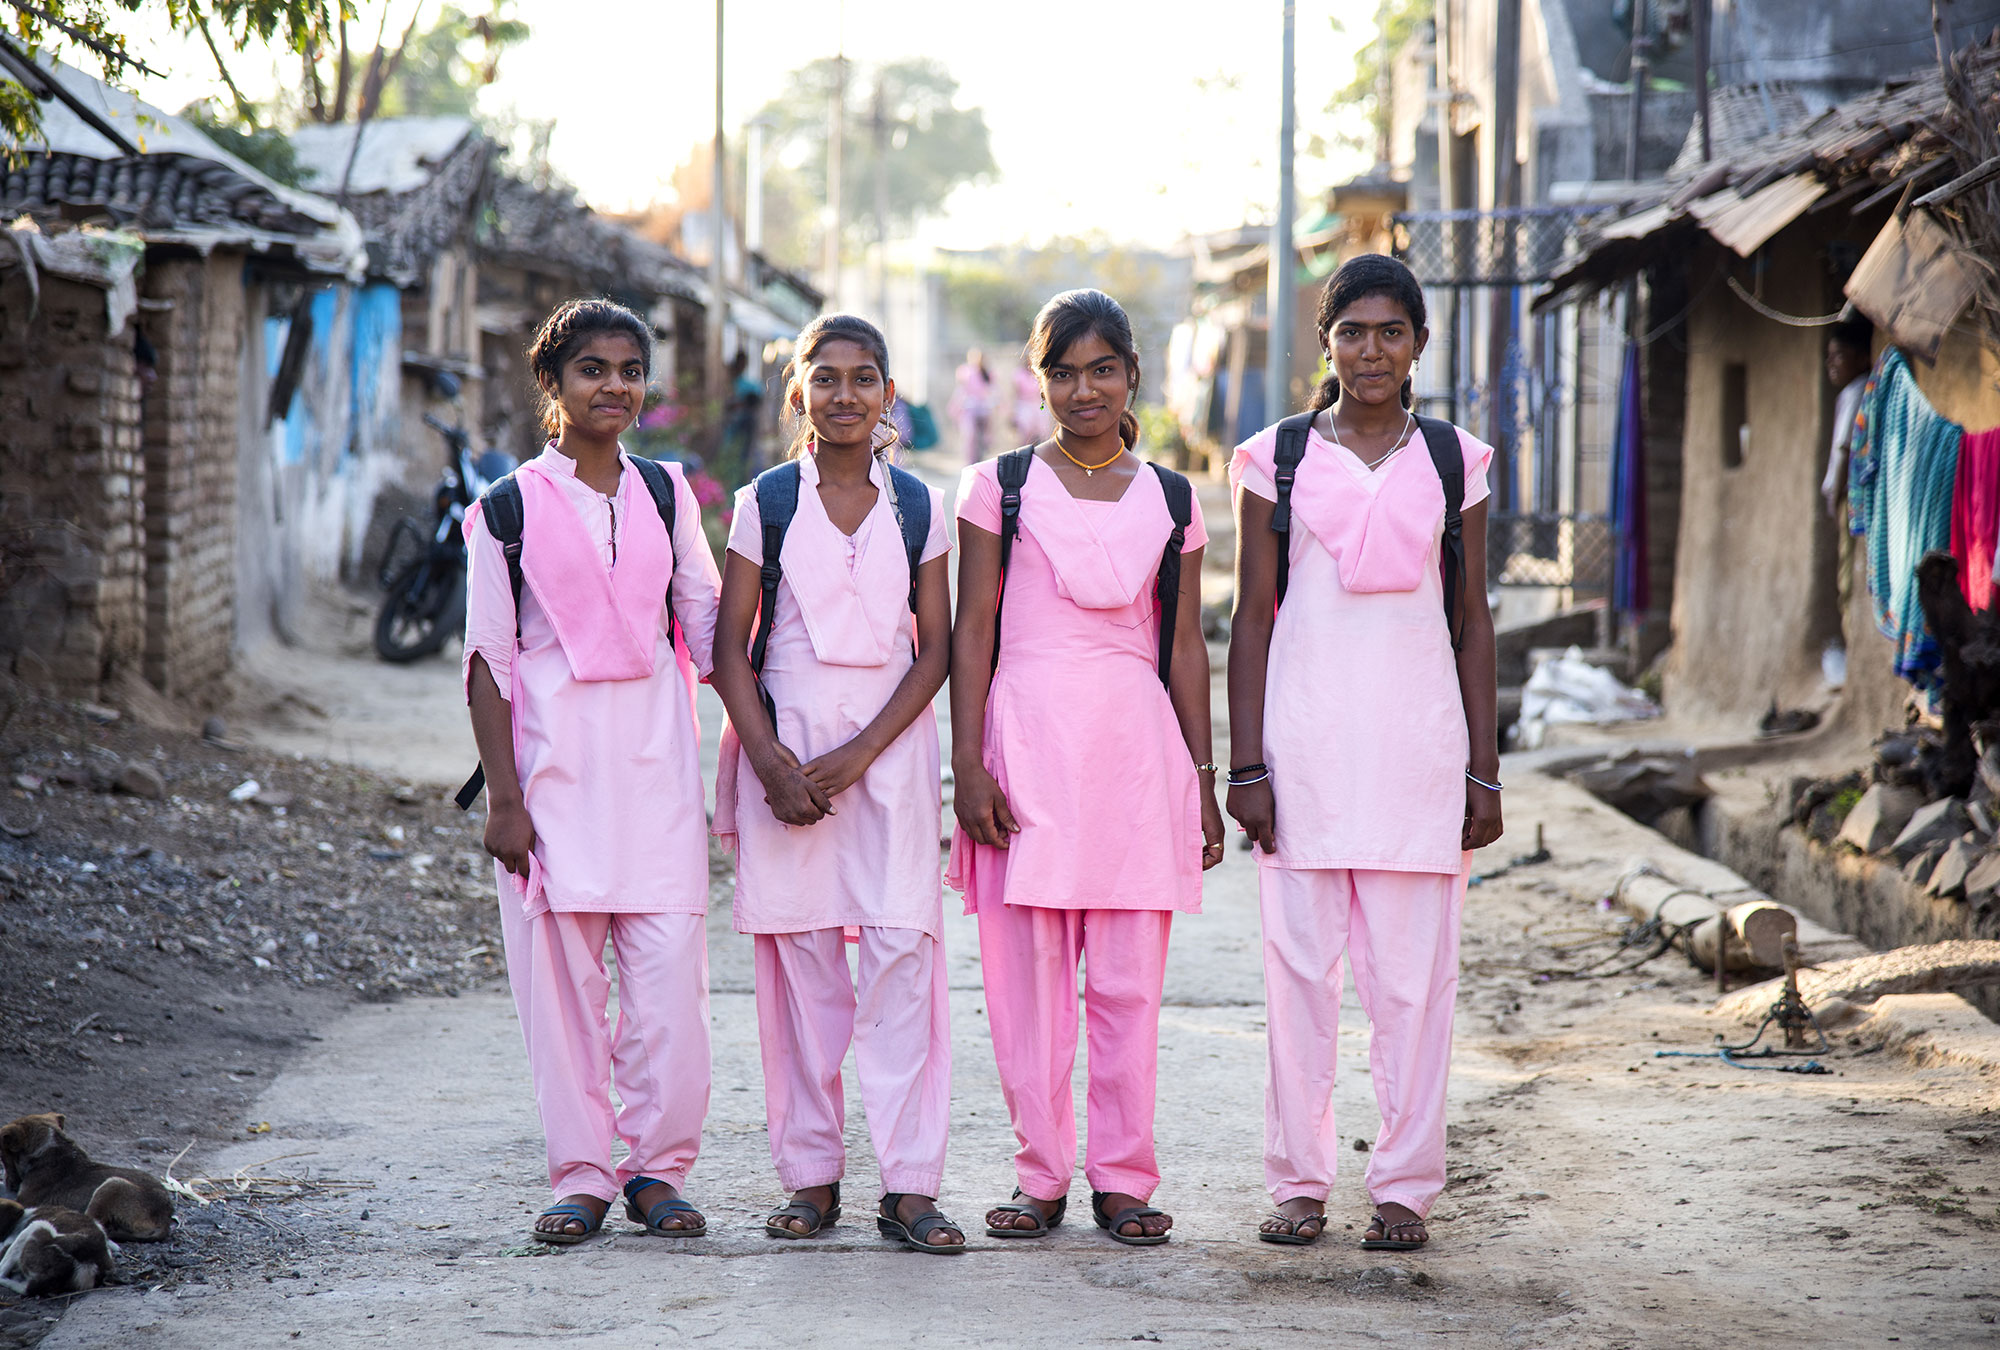 Girls in school uniforms in India